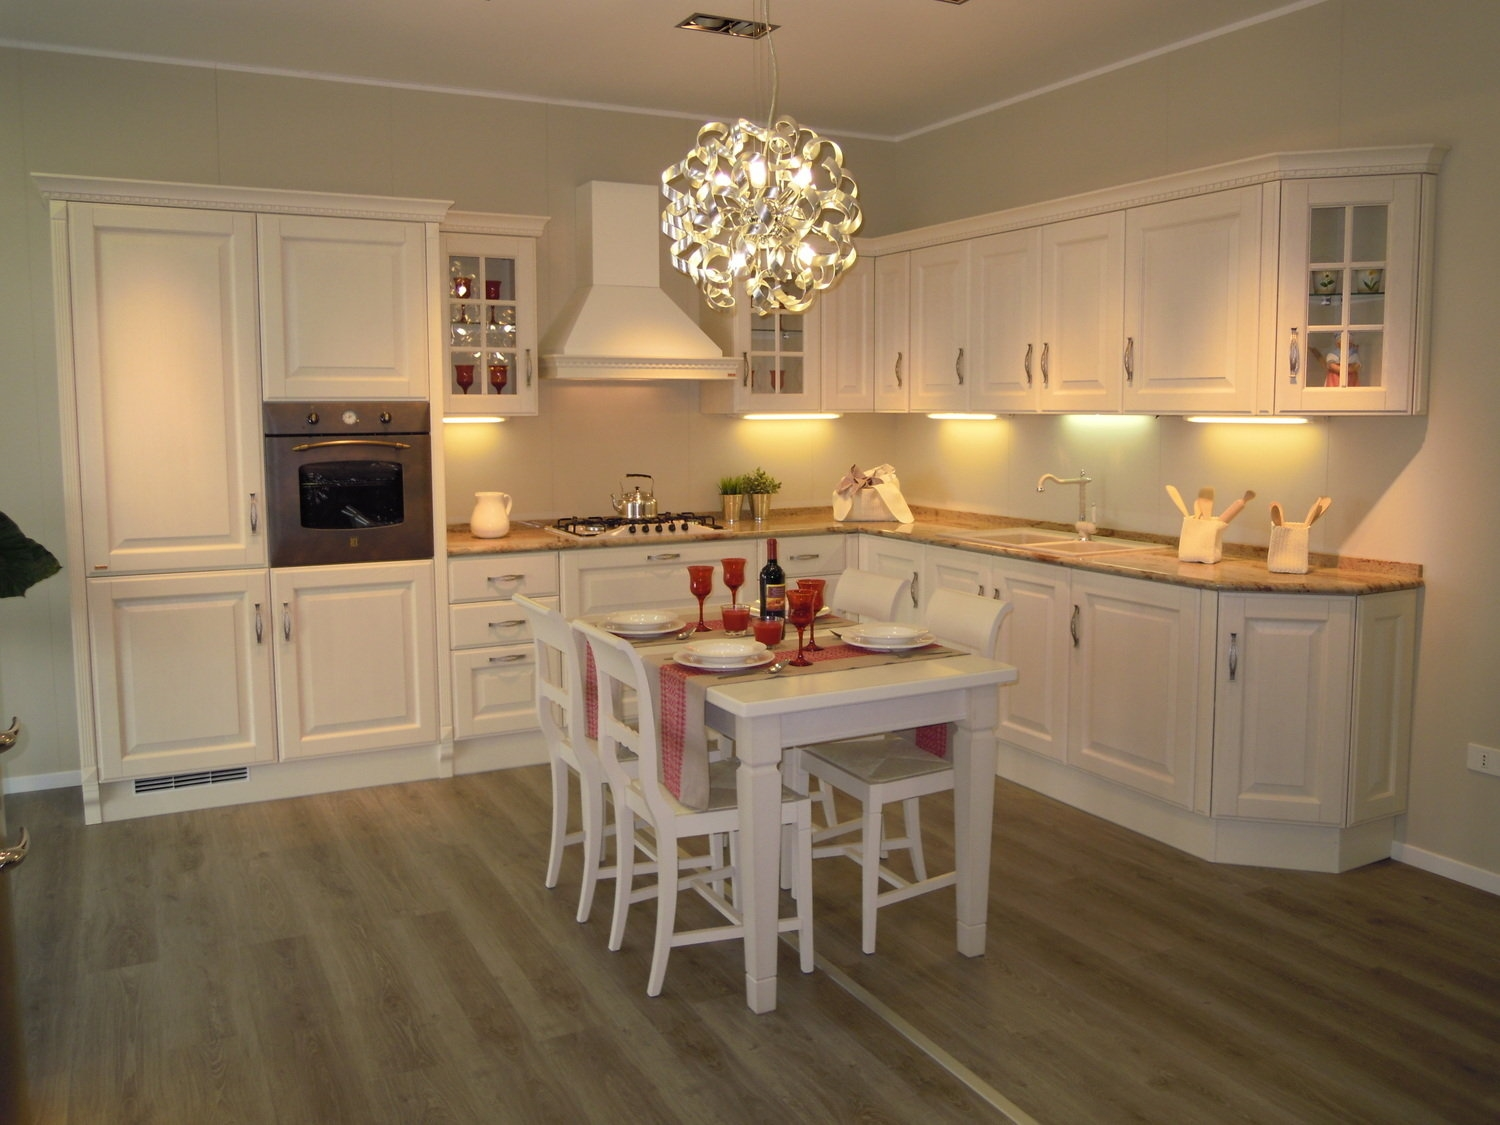 Banco Cucina In Inglese Cucina Stile Country Interesting Cucine Scavolini Stile Country